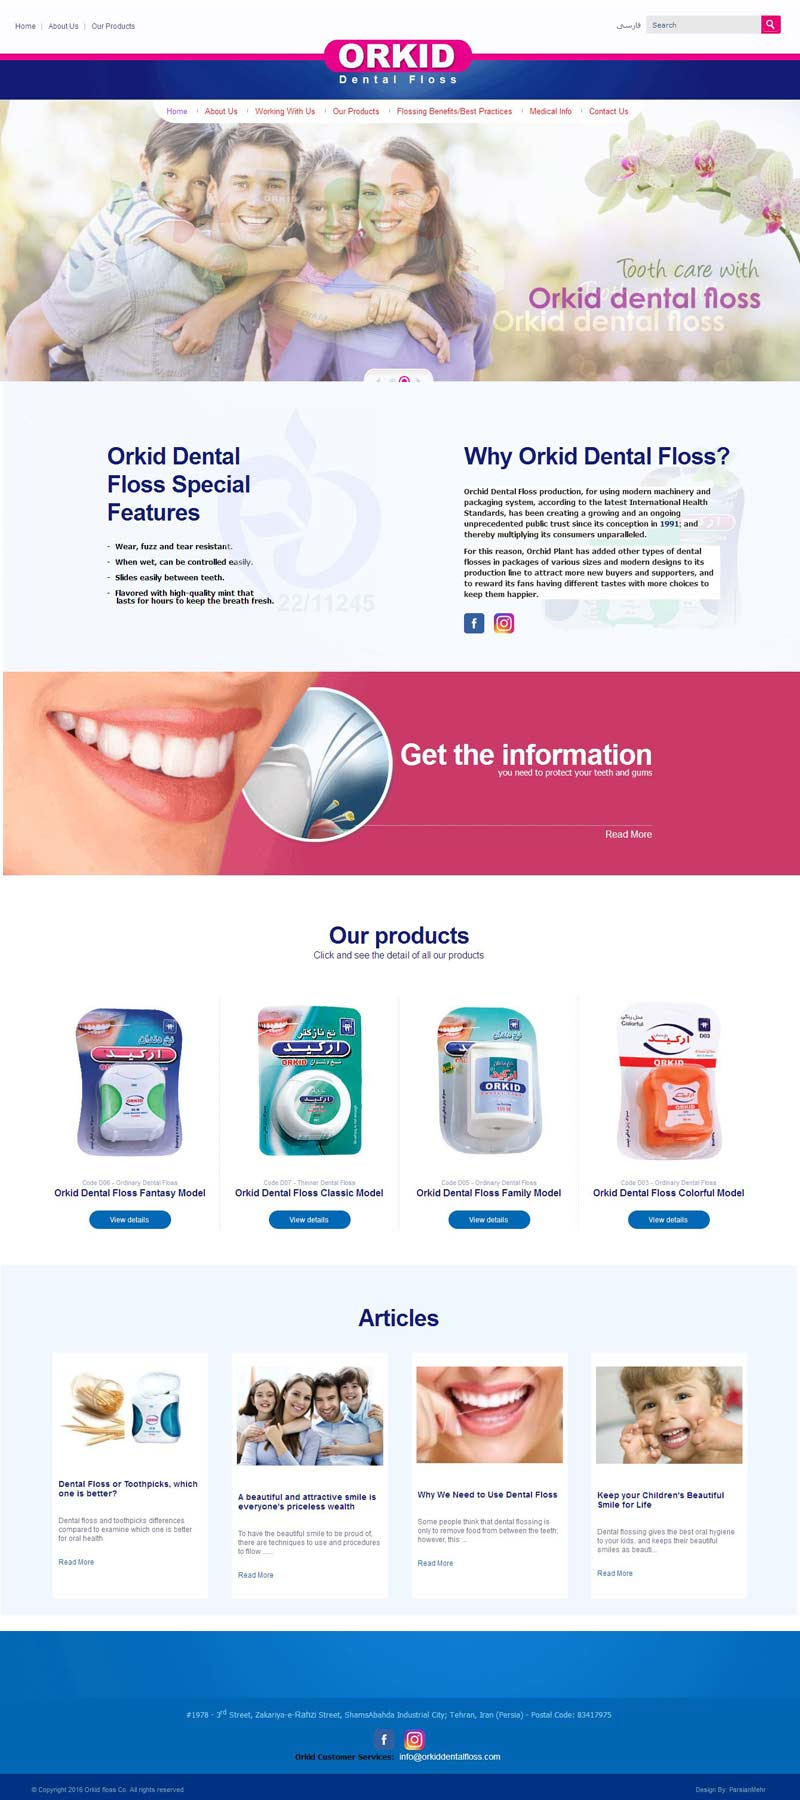 orkid dental floss website